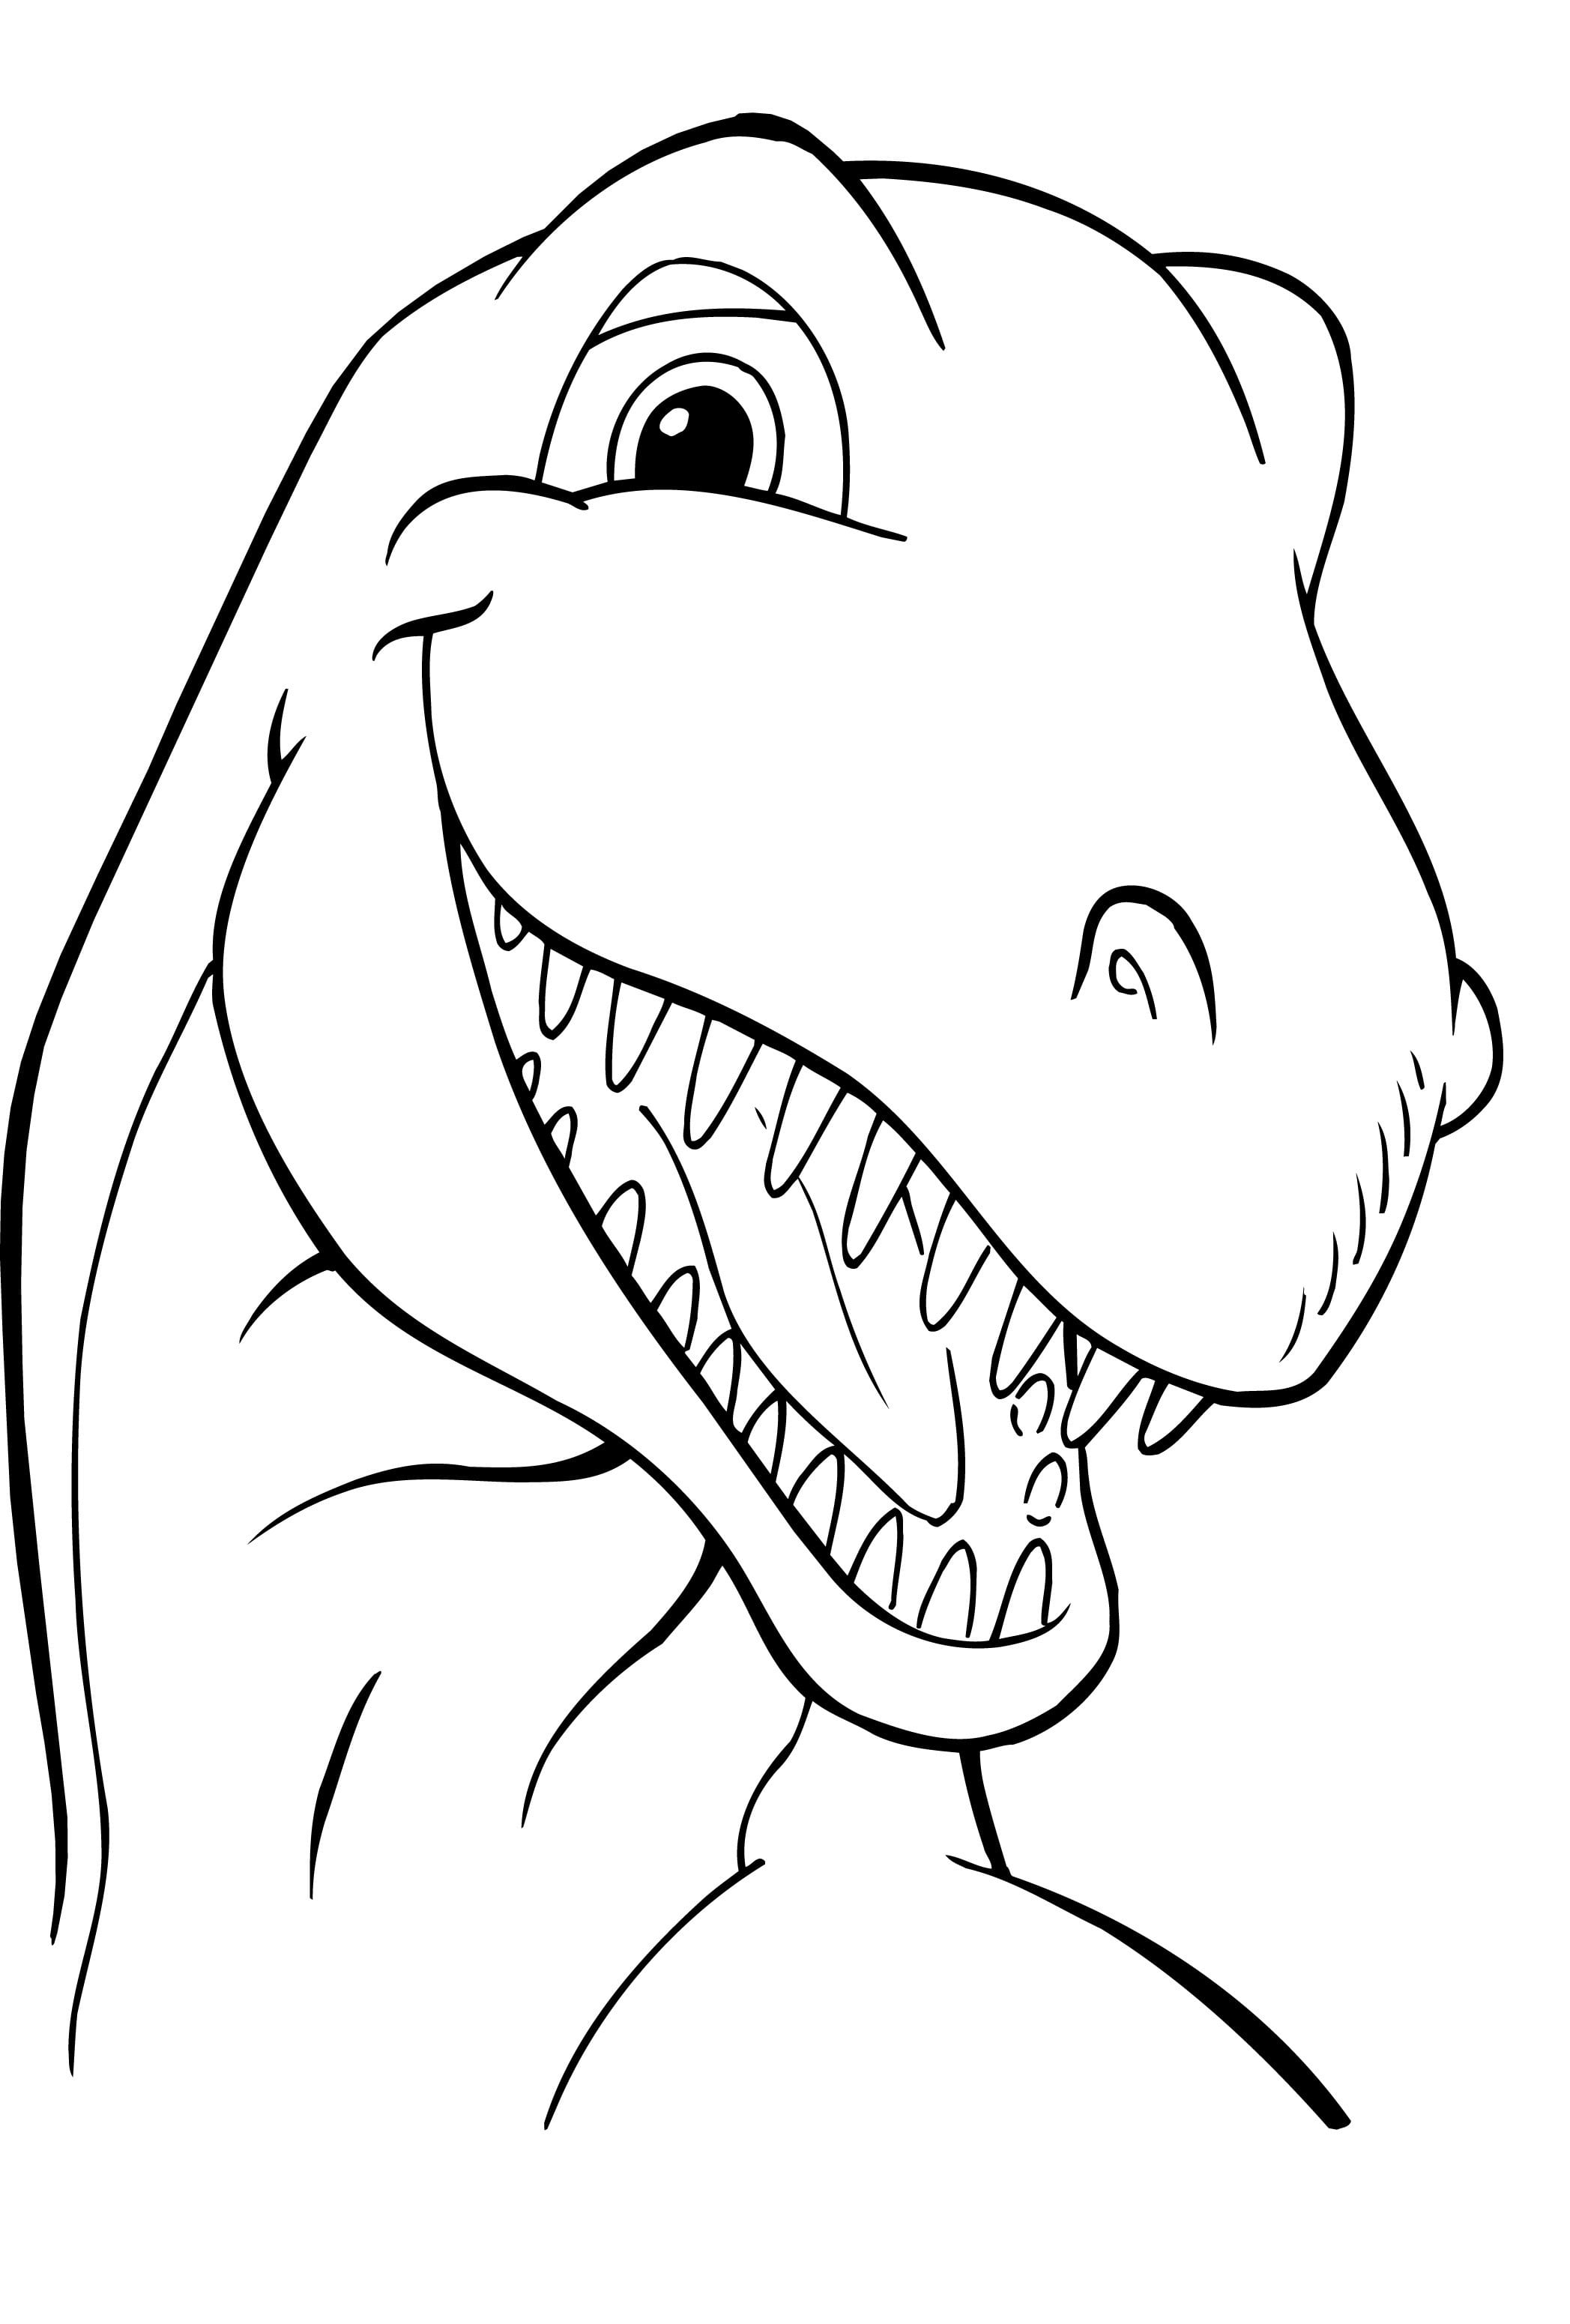 Cartoon Dinosaur Coloring Pages 56 With Cartoon Dinosaur Coloring